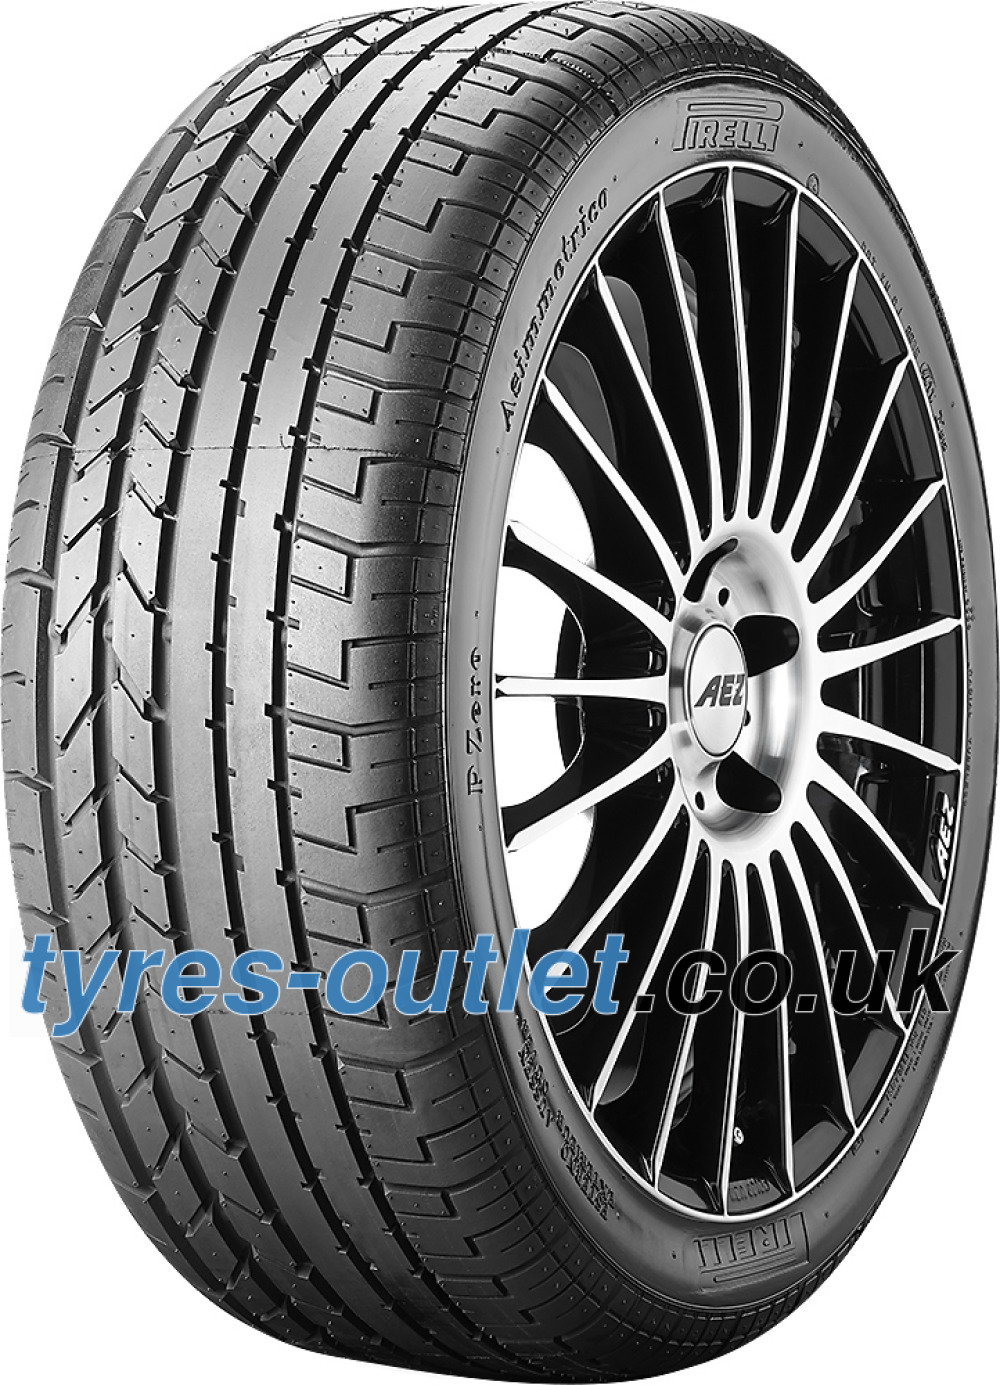 Pirelli P Zero Asimmetrico ( 255/45 ZR17 (98Y) with rim protection (MFS) )